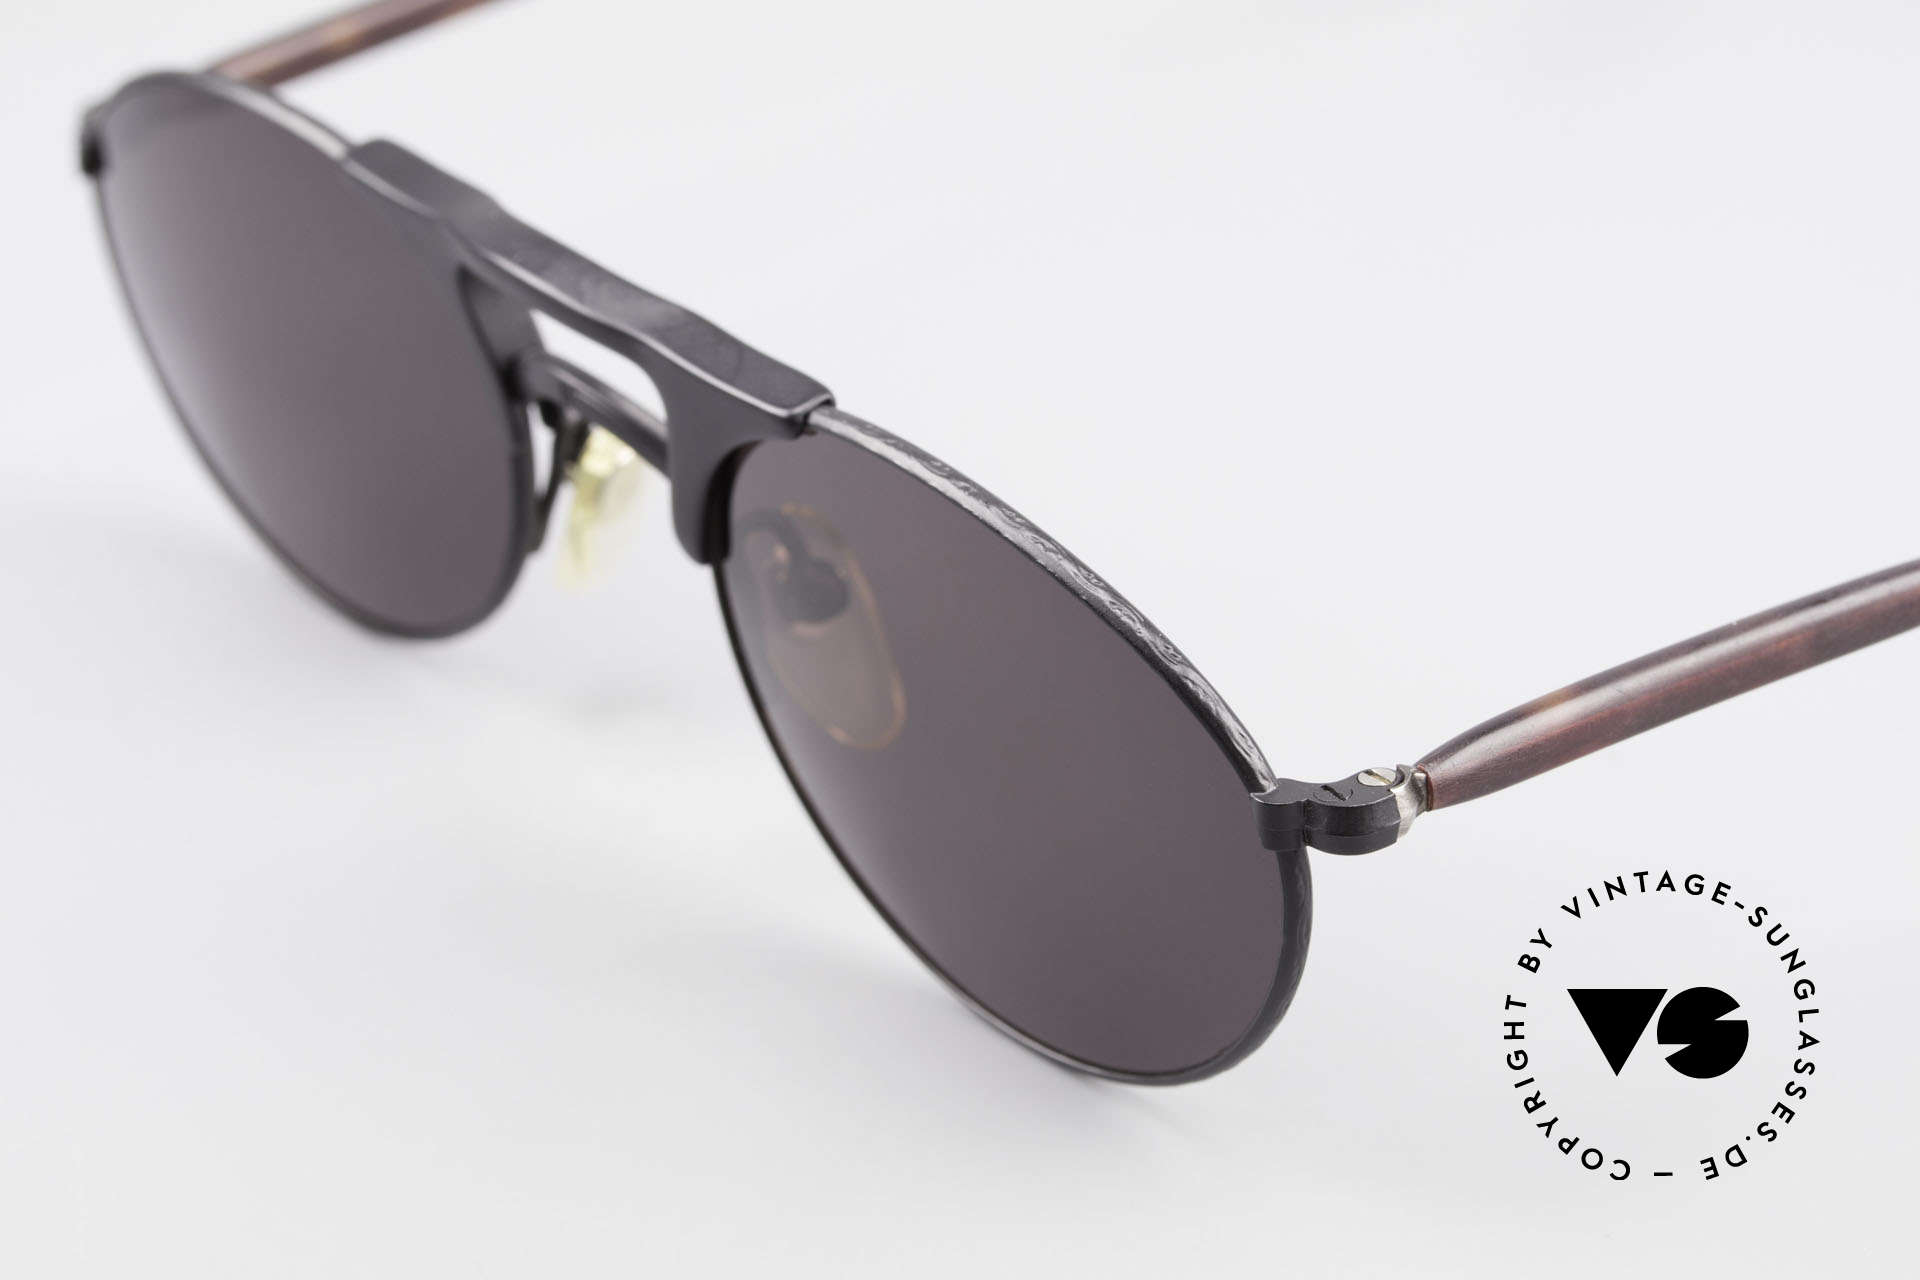 Matsuda 2820 Small Aviator Style Sunglasses, UNWORN rarity (a 'MUST HAVE' for all lovers of design), Made for Men and Women